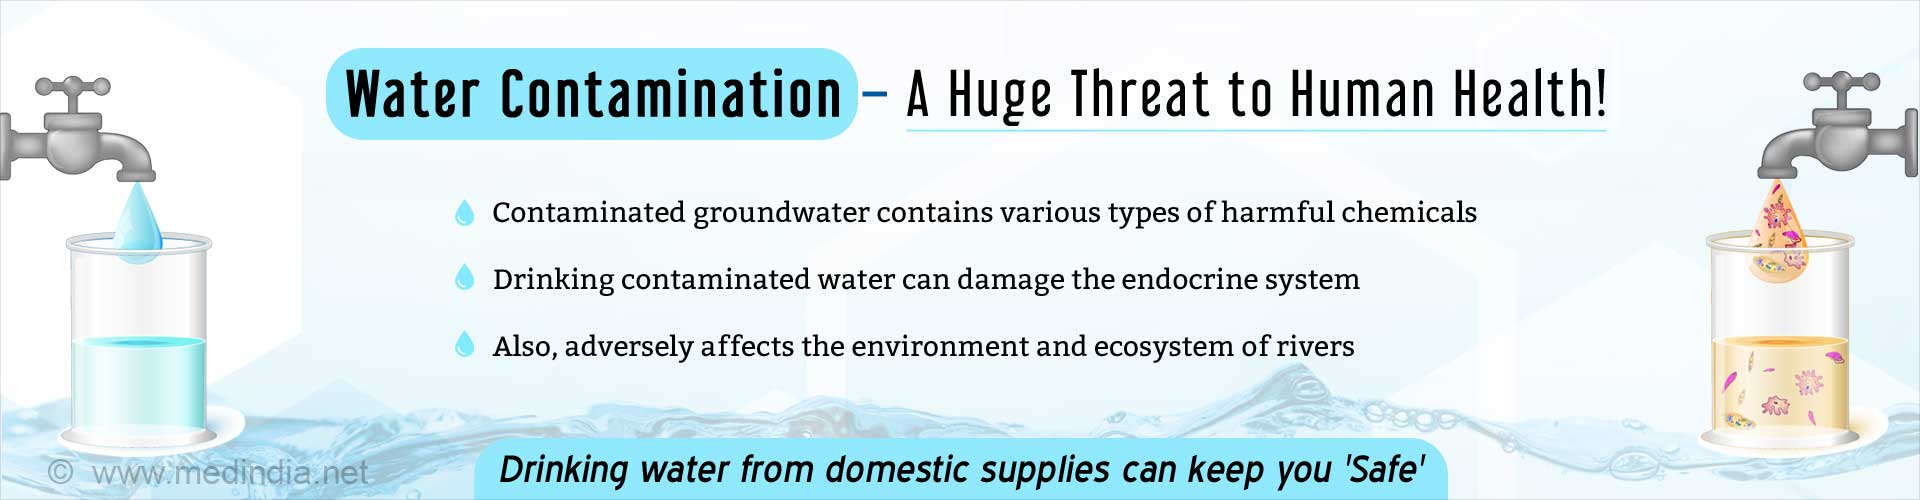 Water contamination - a huge threat to human health. Contaminated groundwater contains various types of harmful chemicals. Drinking contaminated water can damage the endocrine system. Also, adversely affects the environment and ecosystem of rivers. Drinking water from domestic supplies can keep you safe.